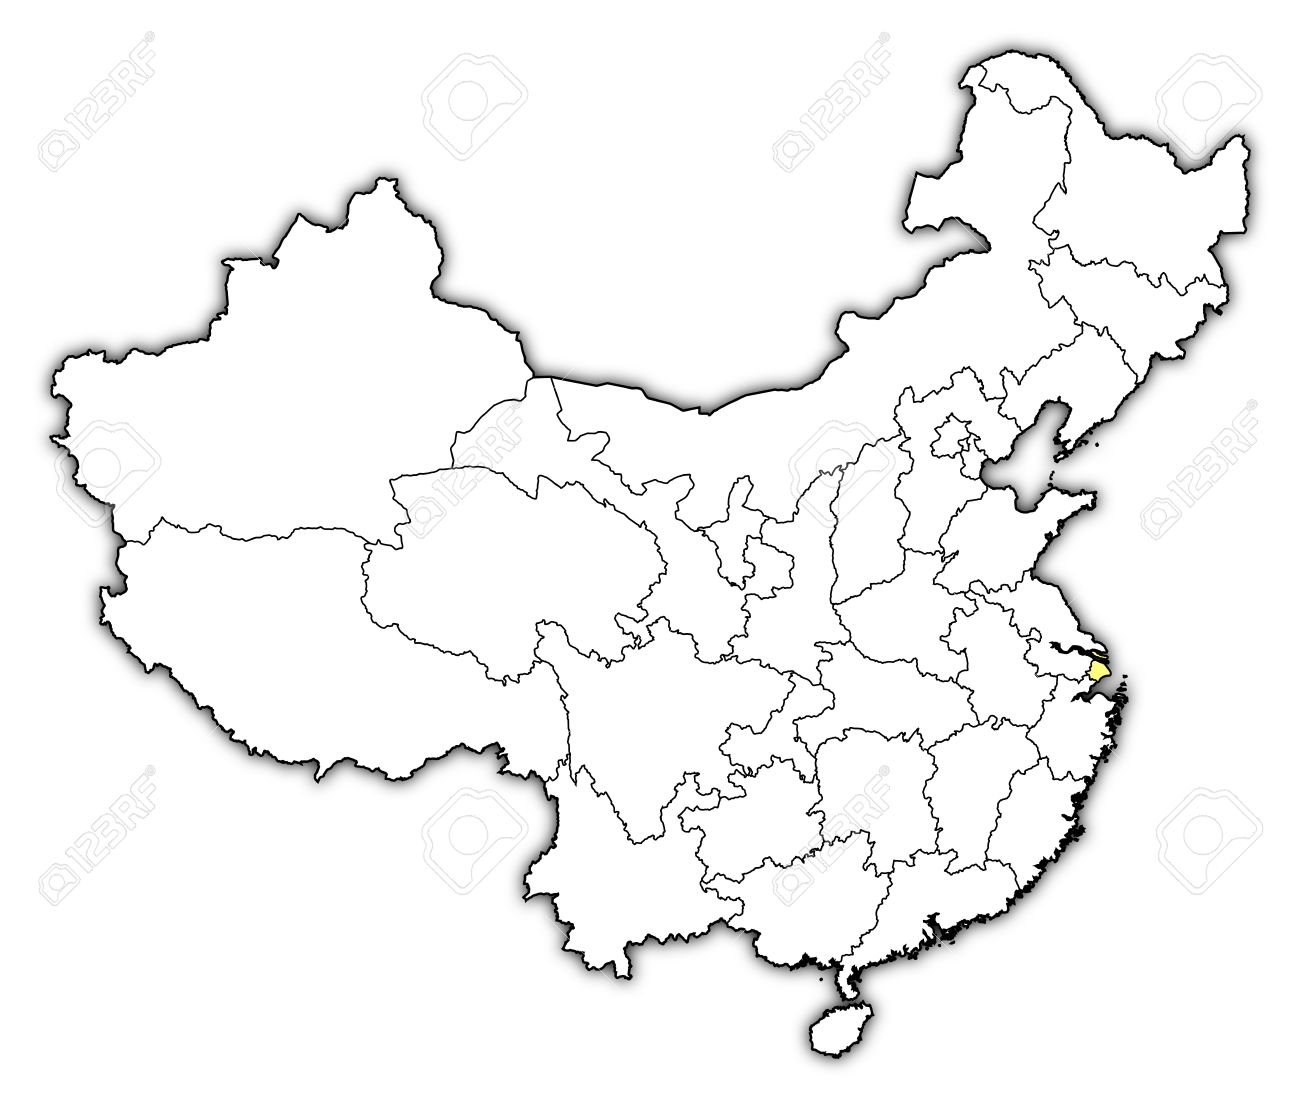 Political Map Of China With The Several Provinces Where Shanghai Is  Highlighted. Stock Vector